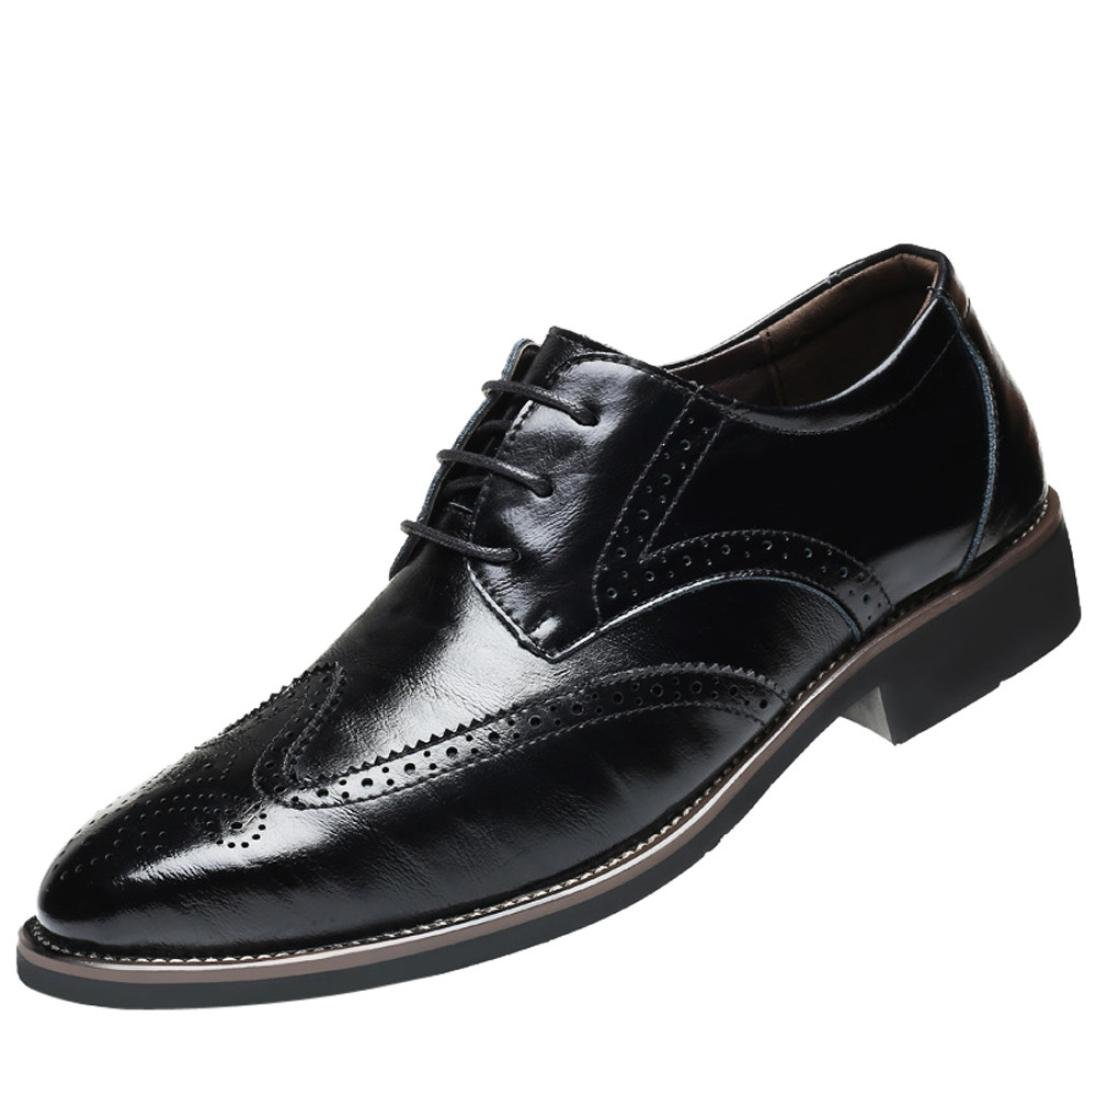 a4dd7d9180db WuyiM Classical Style Men's Breathable Hollow Business Leather Shoes  Pointed Toe Lacing-up Dress Wedding Formal Shoes Brown/Black/Wine/Navy Color